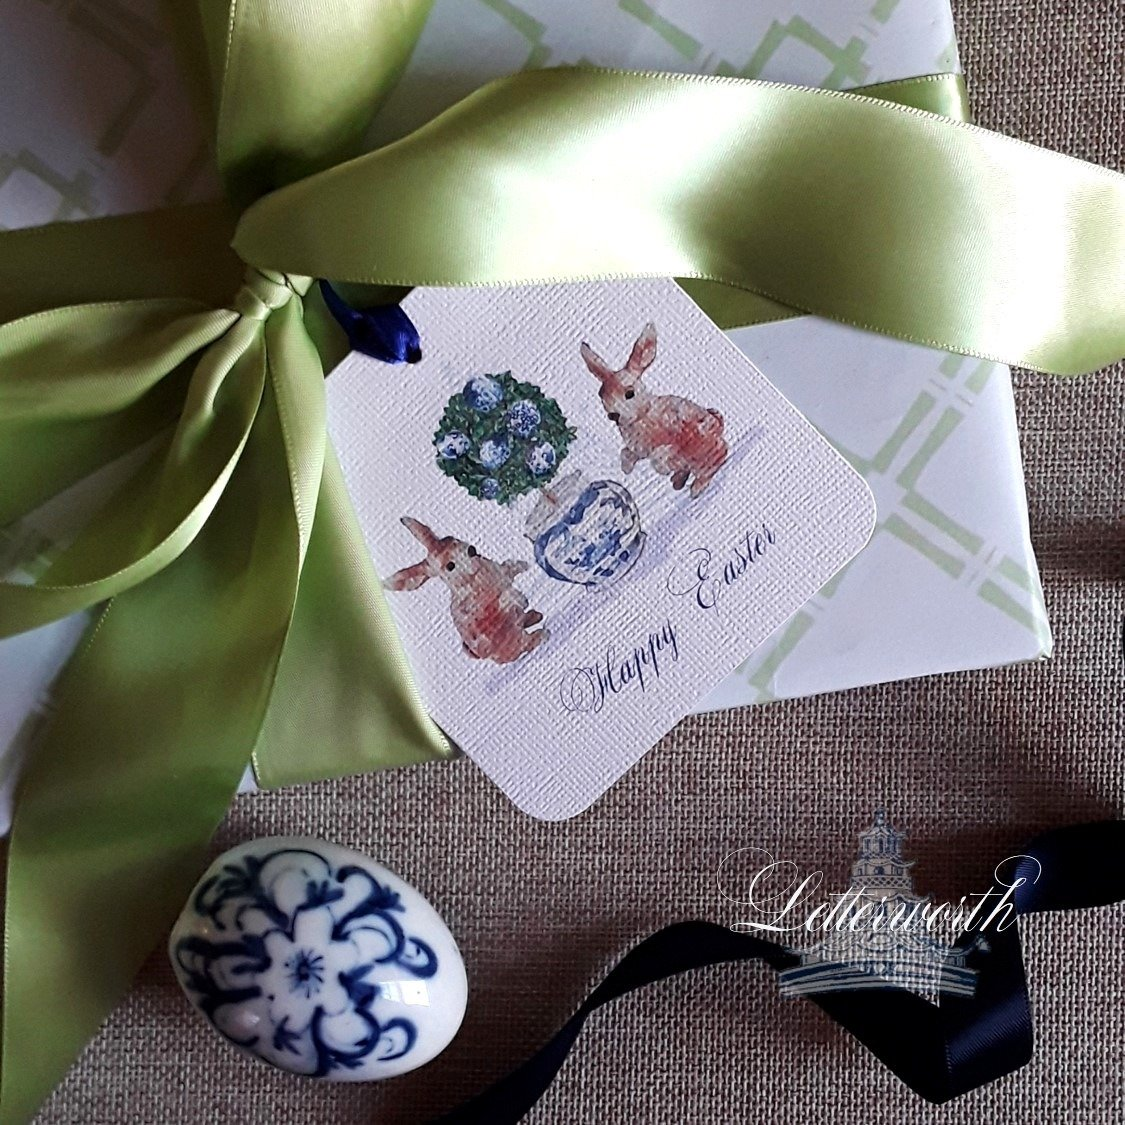 Rabbit Blue and White Easter Egg Topiary Watercolor Gift Tags by Letterworth (Set of 12)